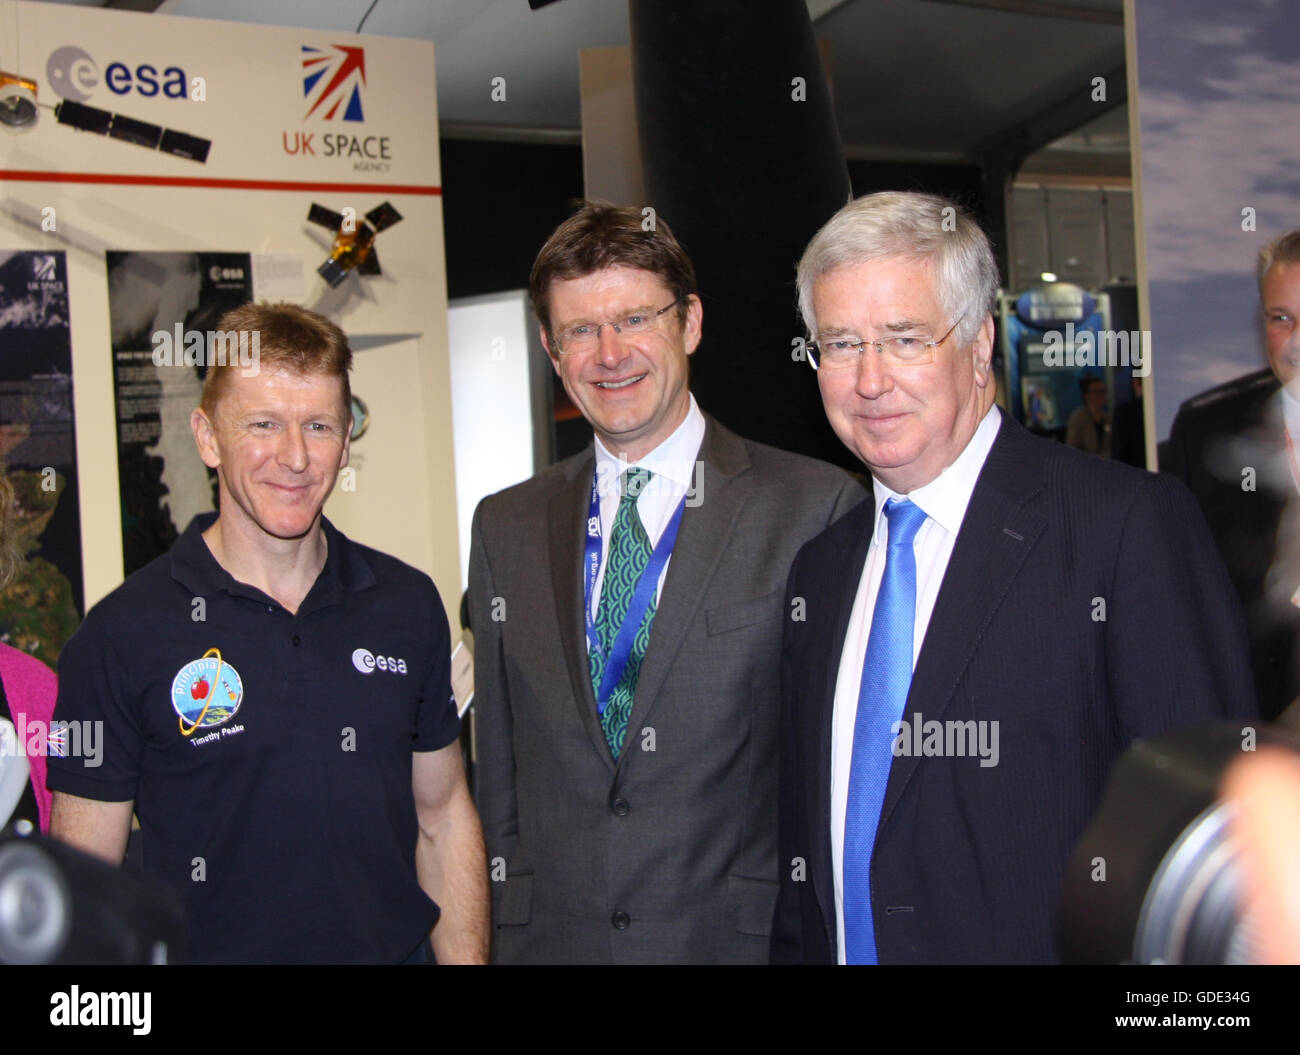 Tim Peake Astronaut, Greg Clark MP minister for 'Business Energy & Industrial Strategy', Michael Fallon - Stock Image